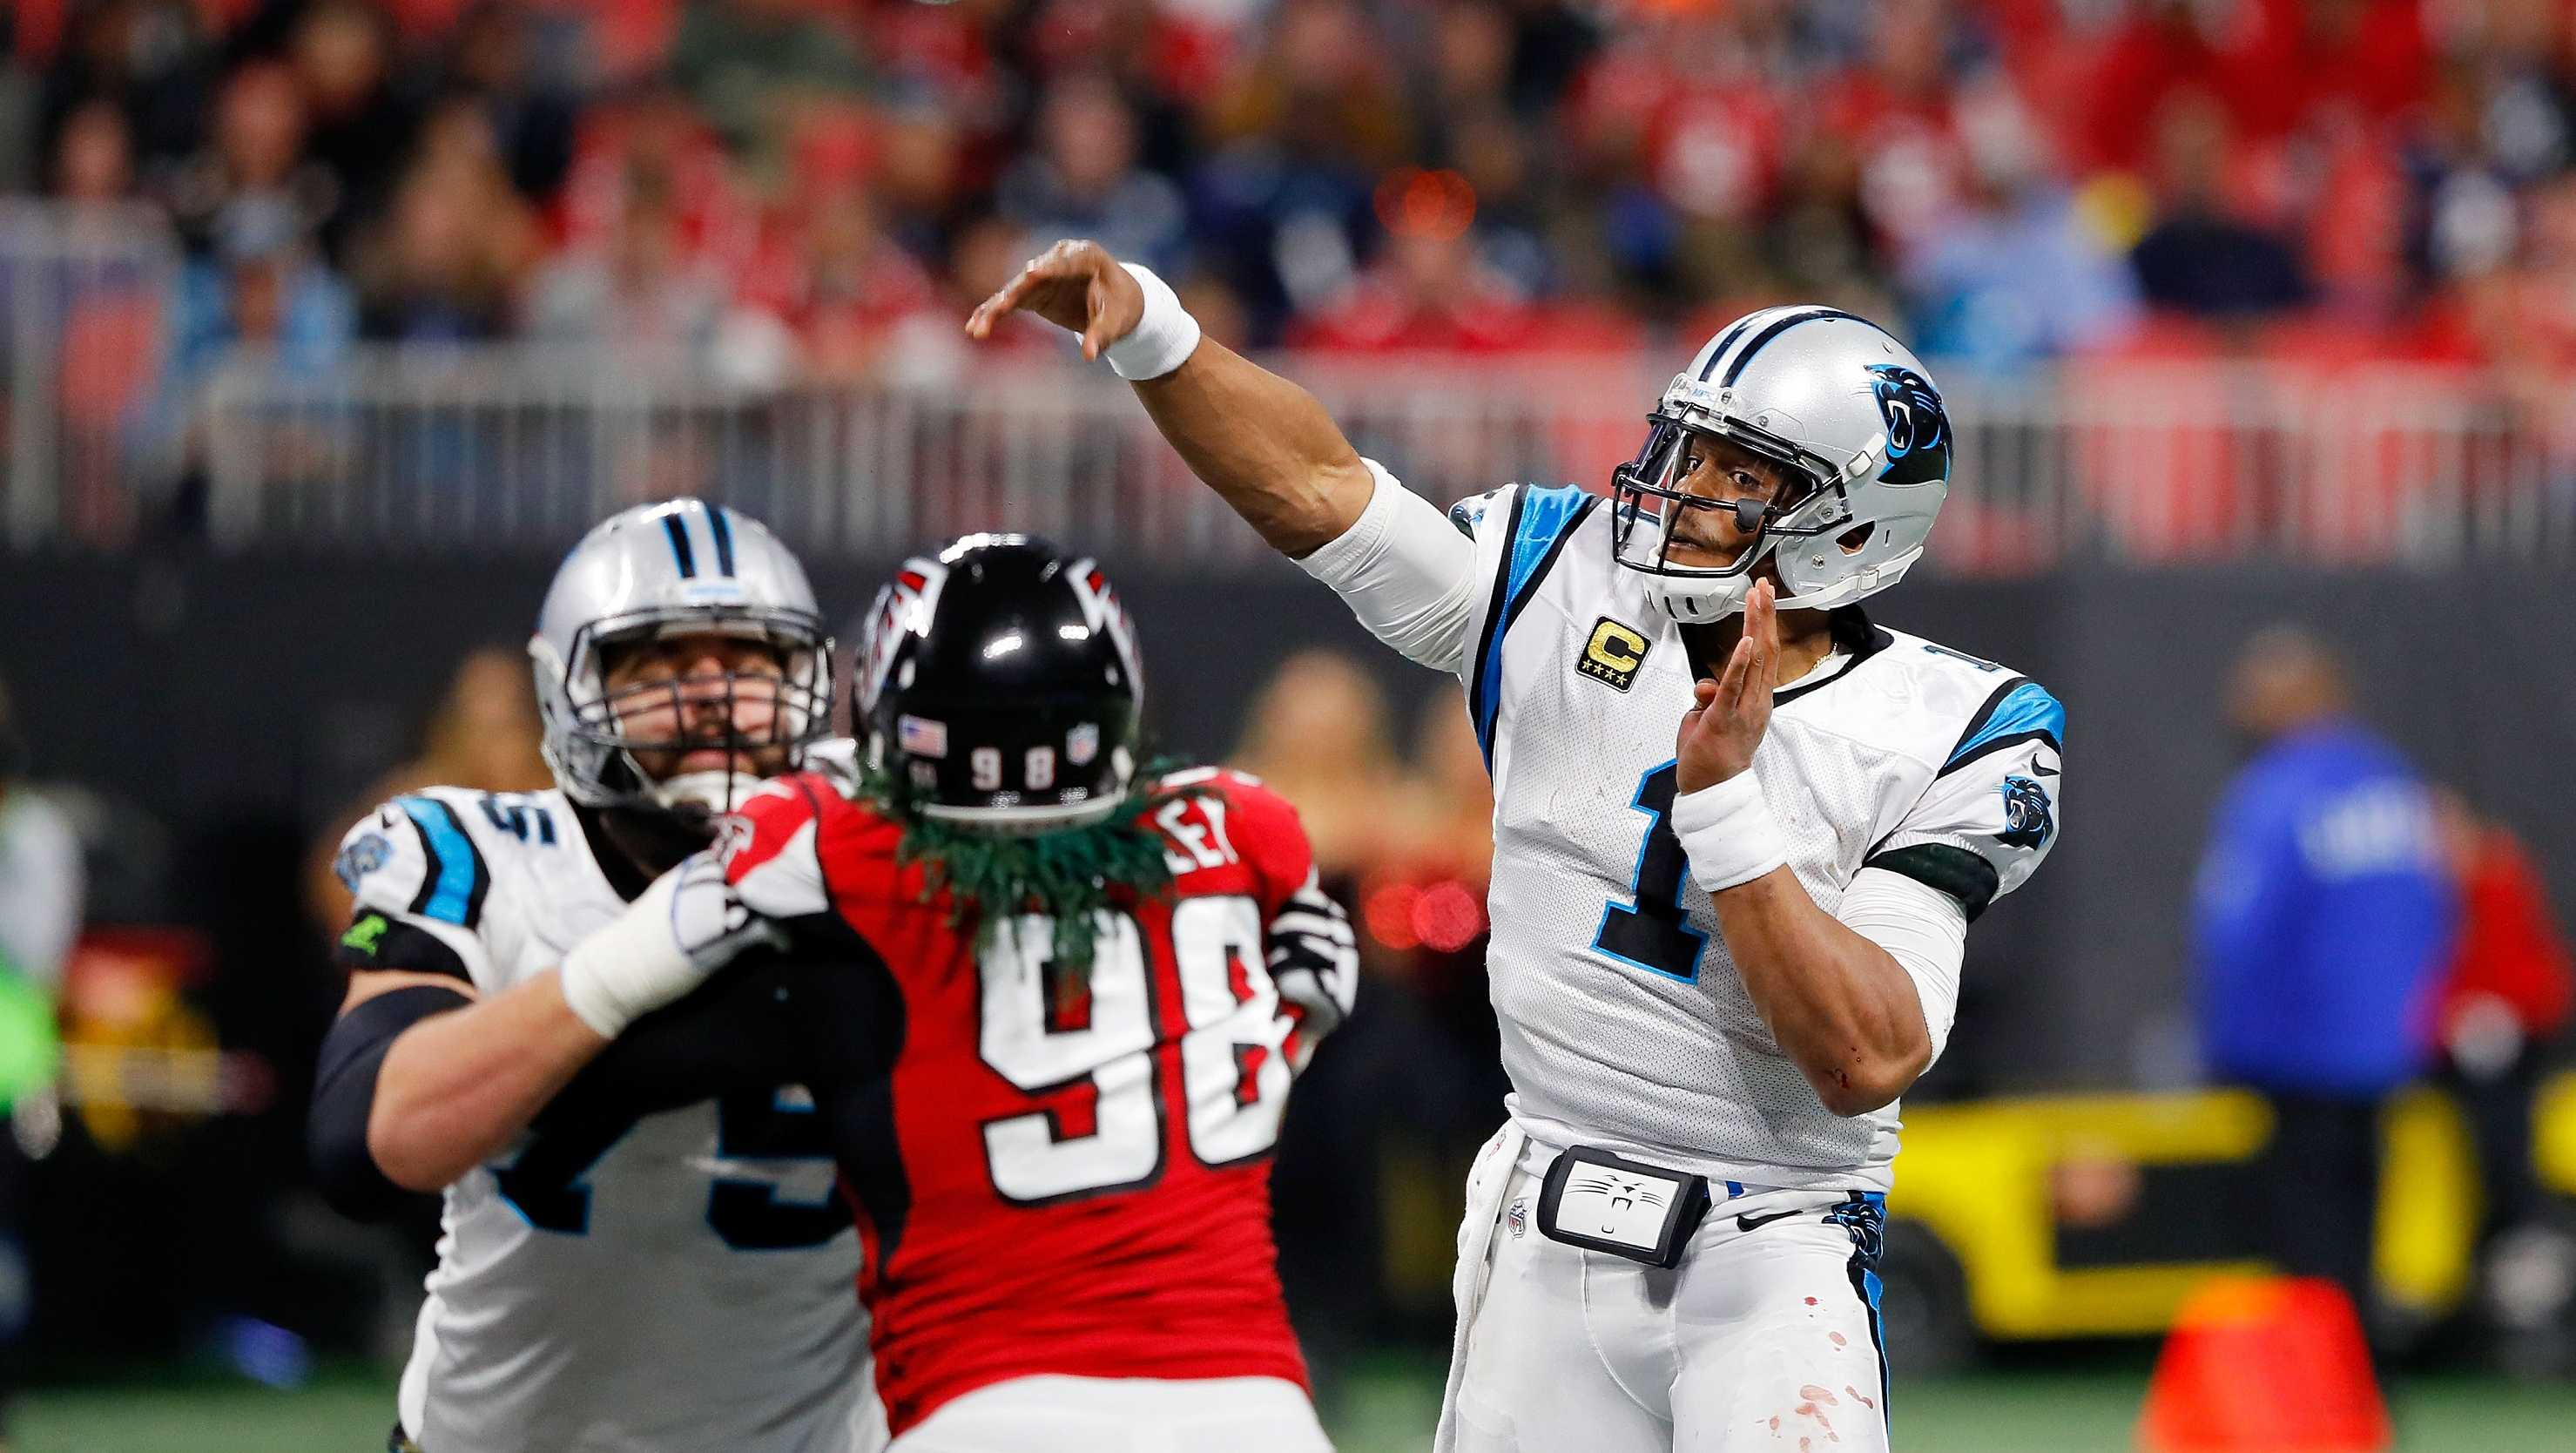 Cam Newton #1 of the Carolina Panthers throws a pass during the second half against the Atlanta Falcons at Mercedes-Benz Stadium on December 31, 2017 in Atlanta, Georgia.